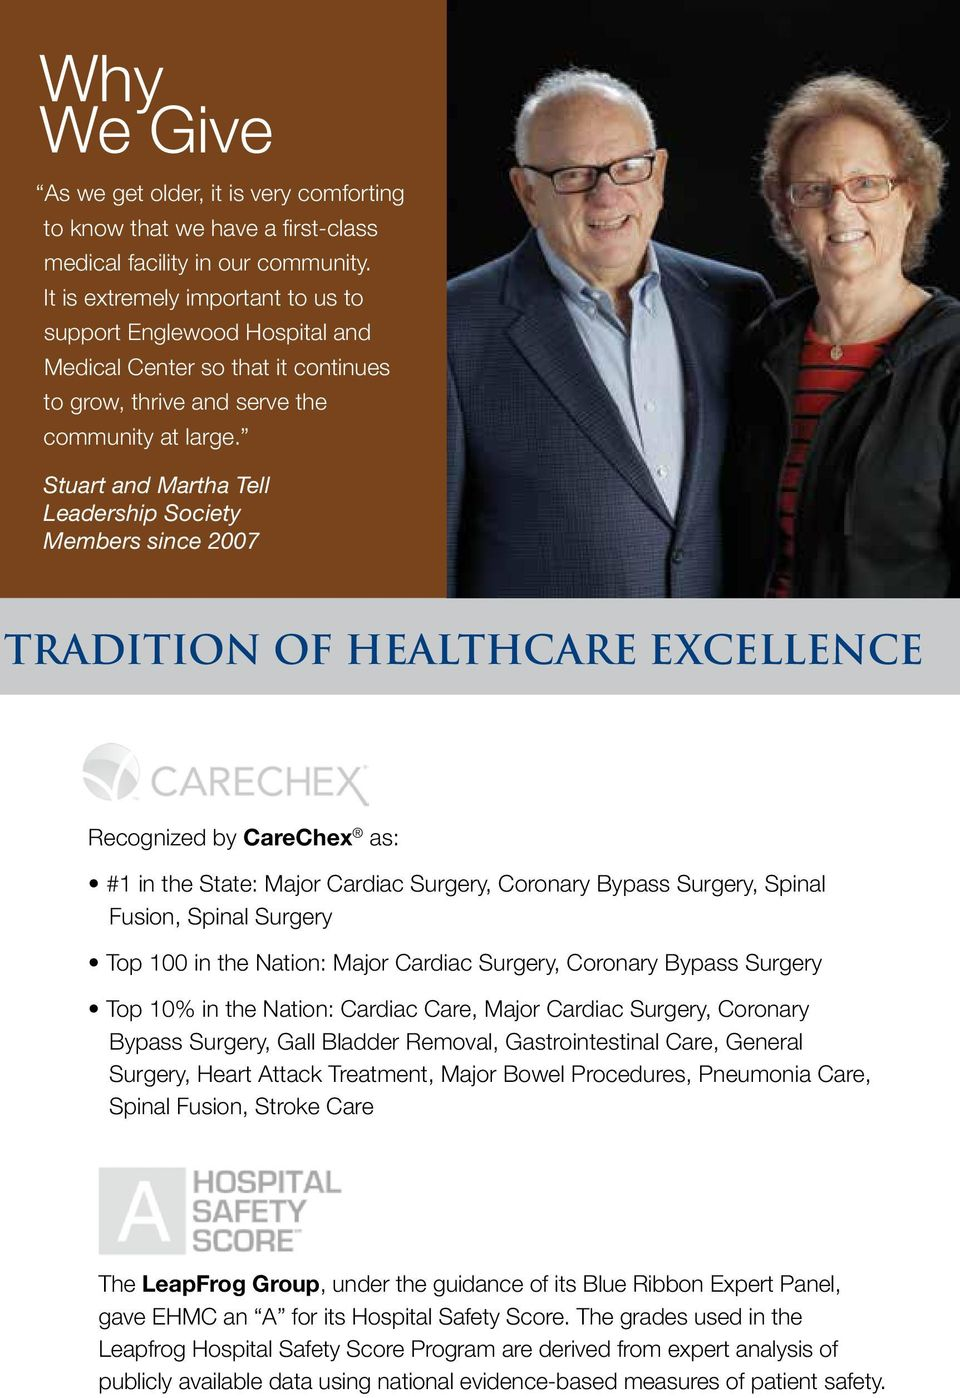 Stuart and Martha Tell Leadership Society Members since 2007 Tradition of Healthcare Excellence Recognized by CareChex as: #1 in the State: Major Cardiac Surgery, Coronary Bypass Surgery, Spinal